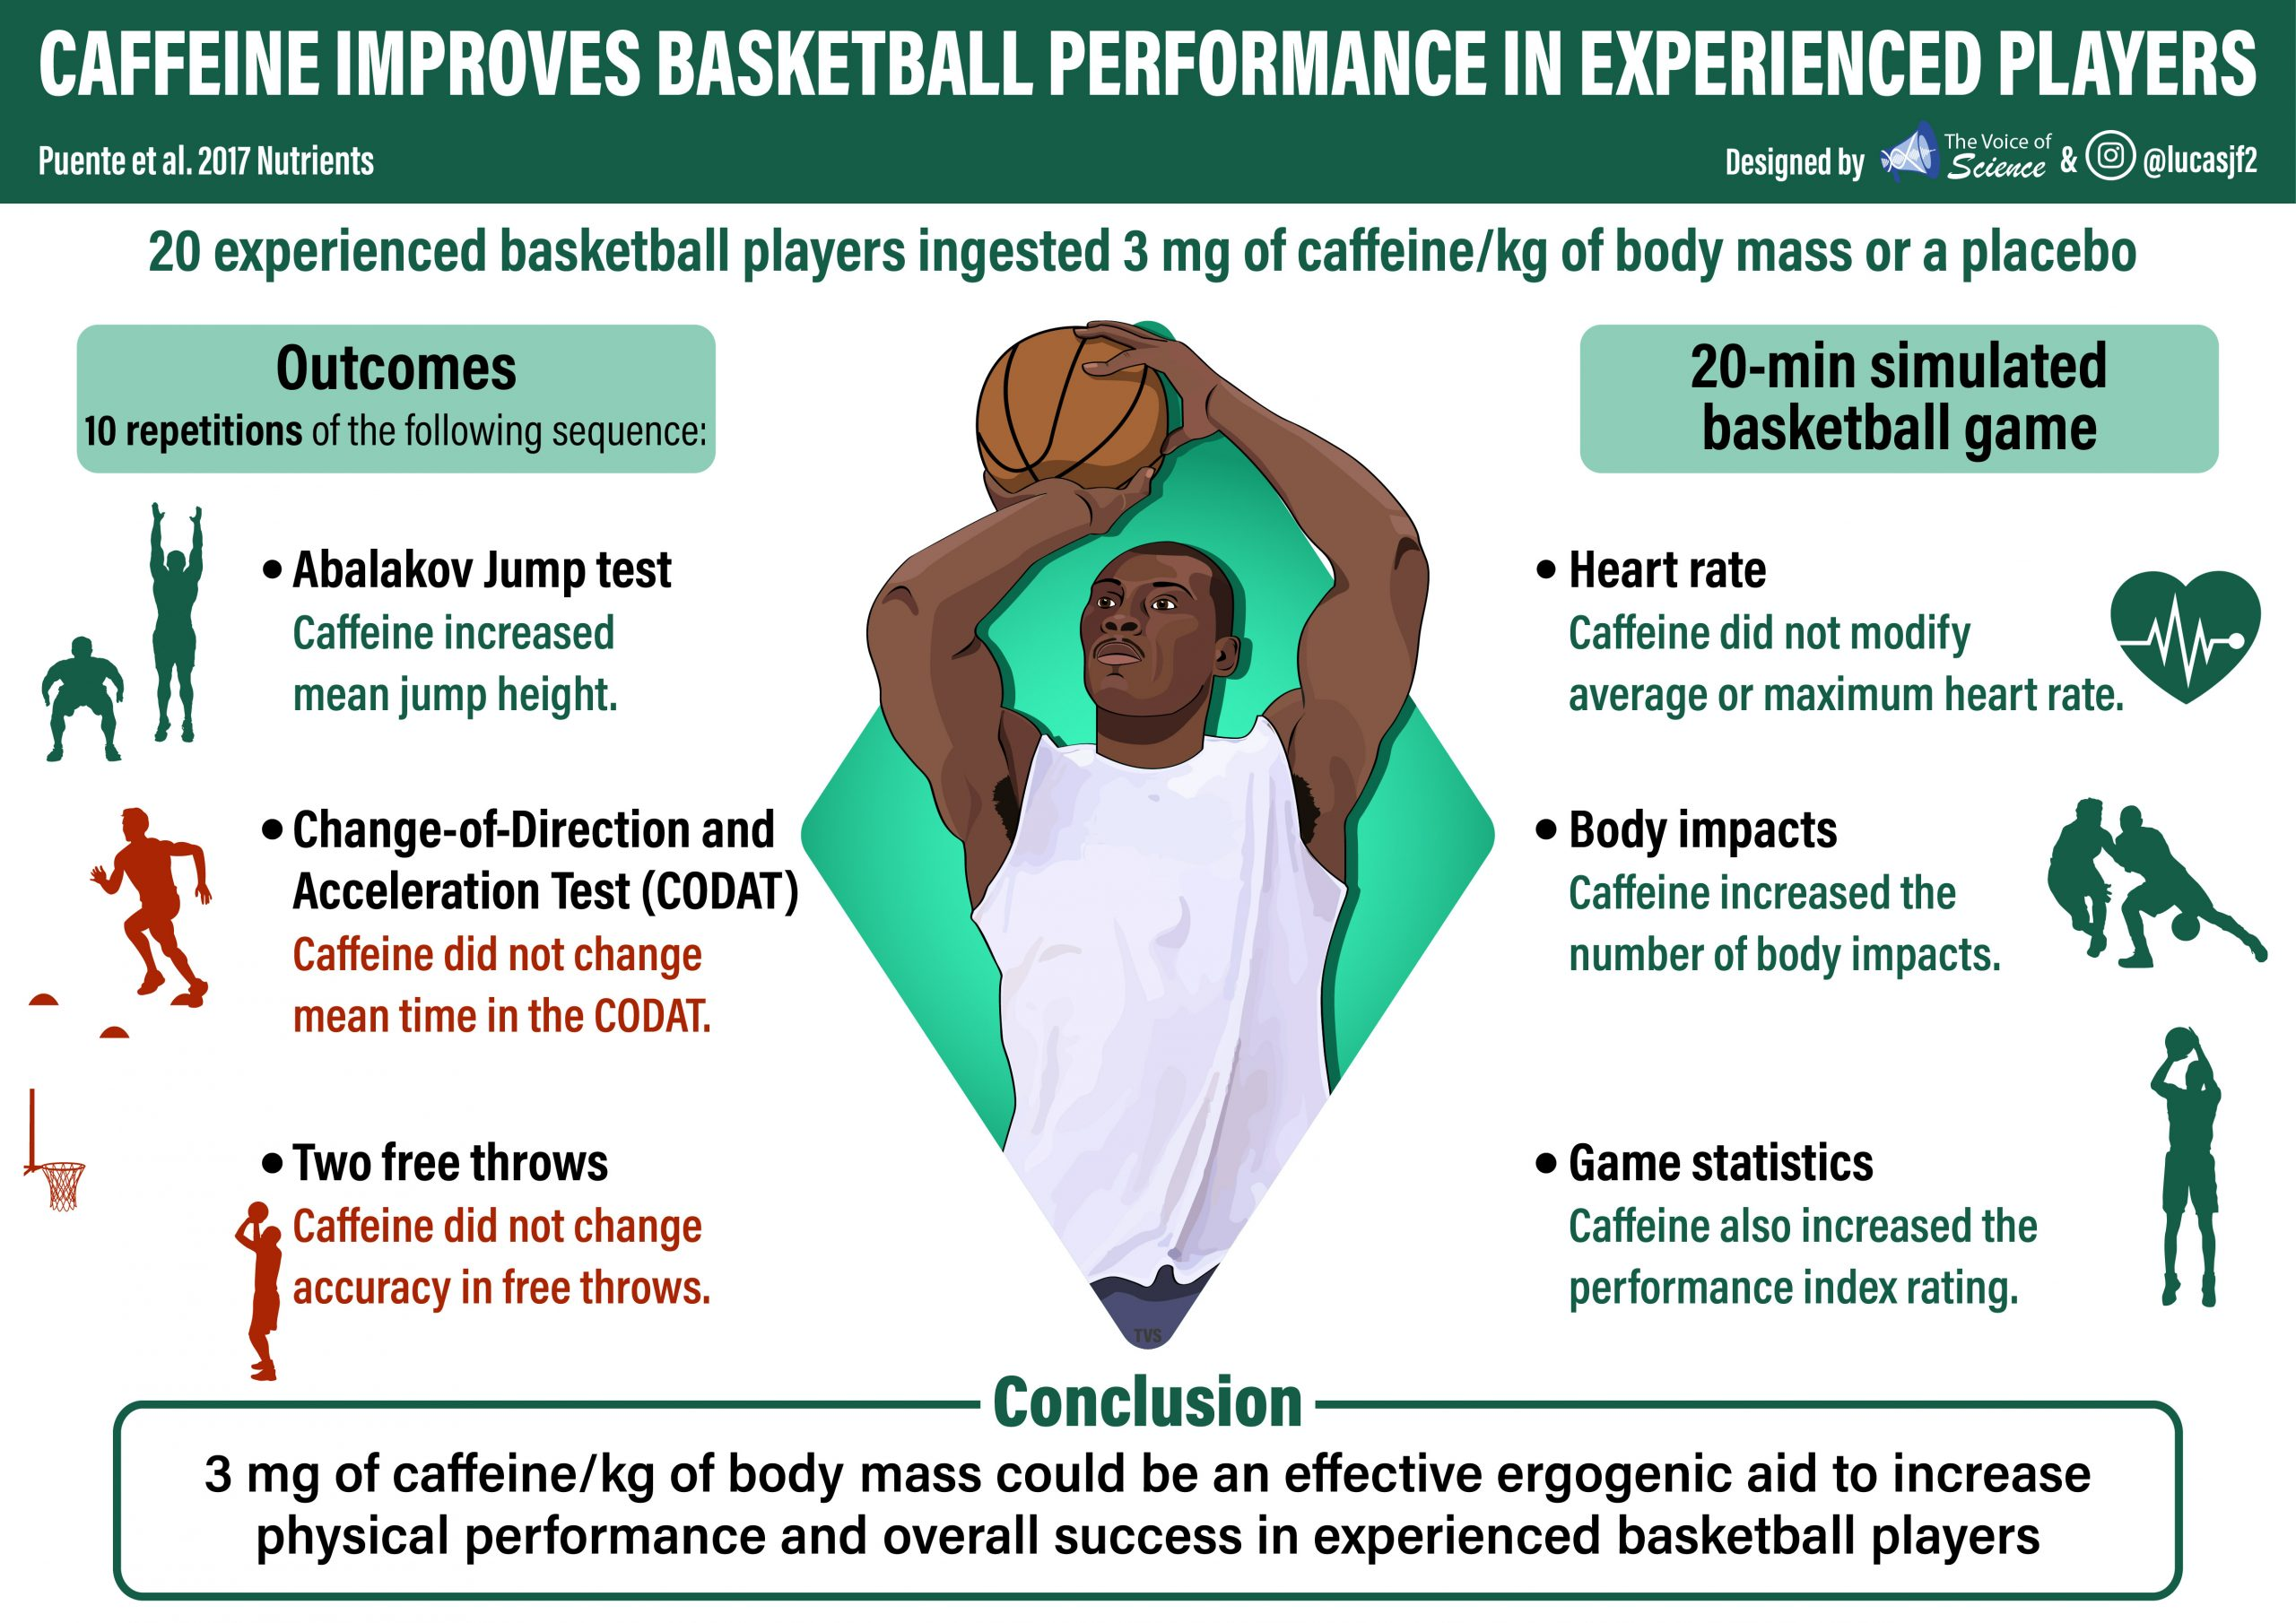 Caffeine improves basketball performance in experience players.